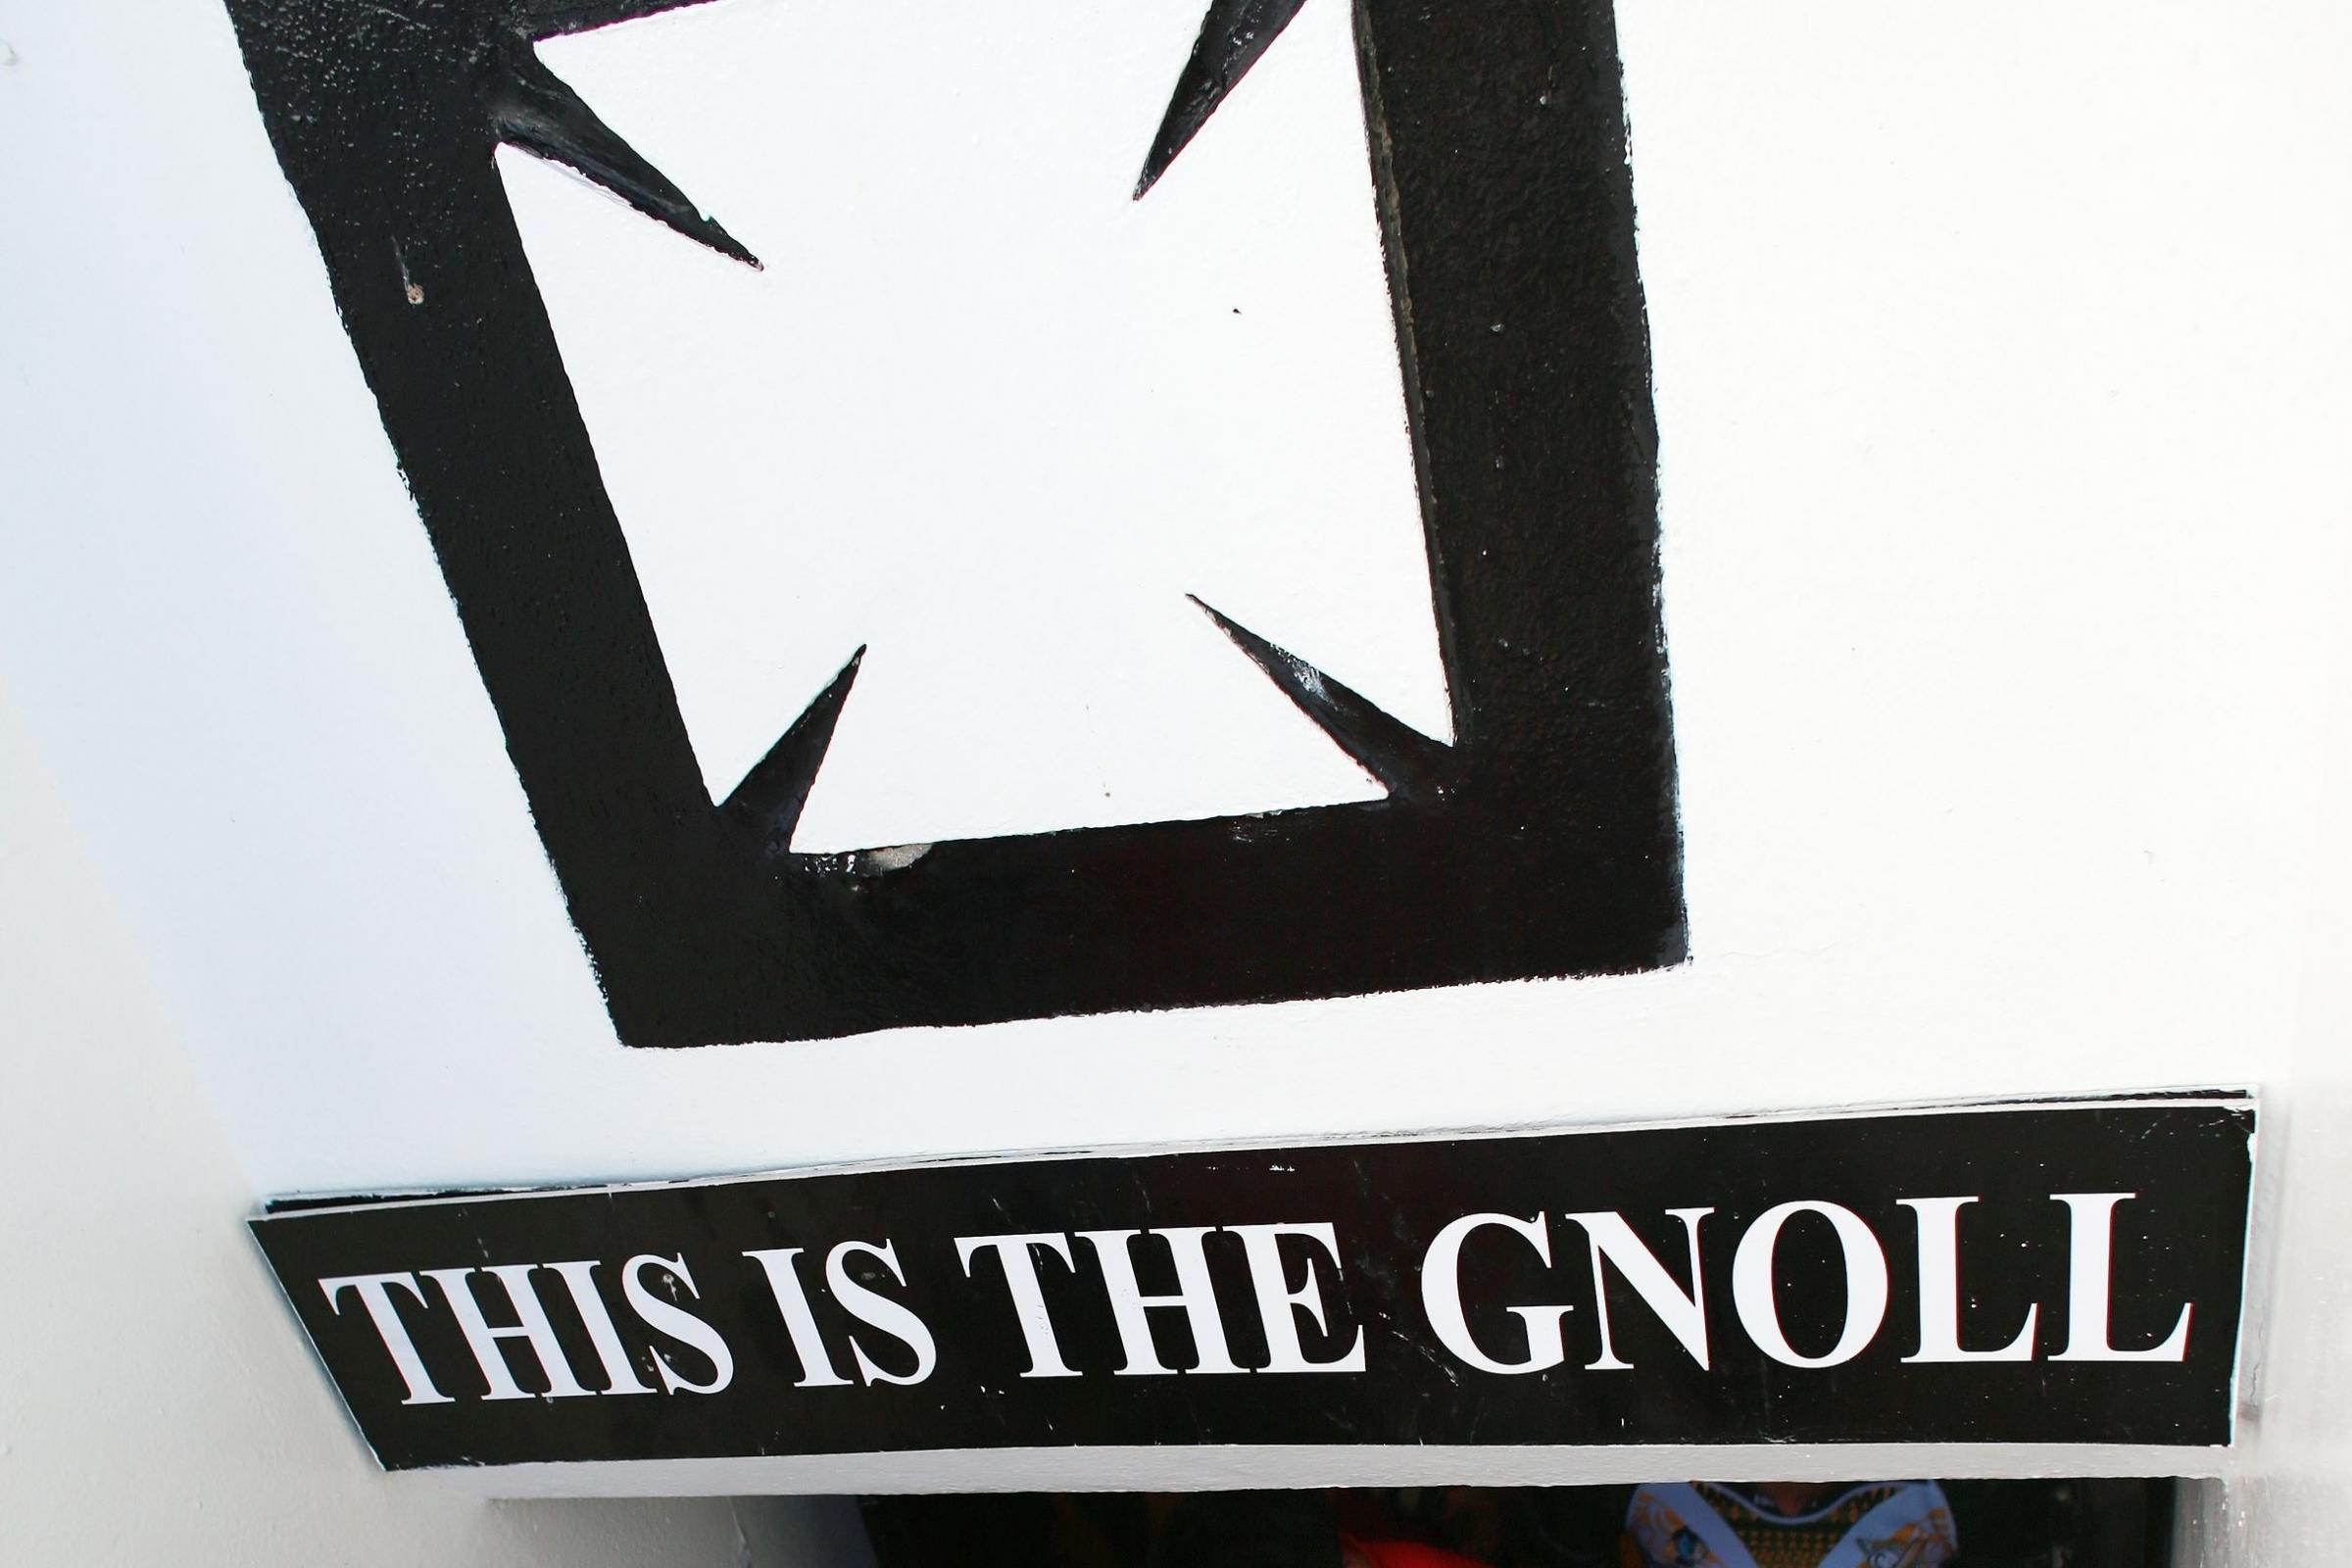 The Gnoll